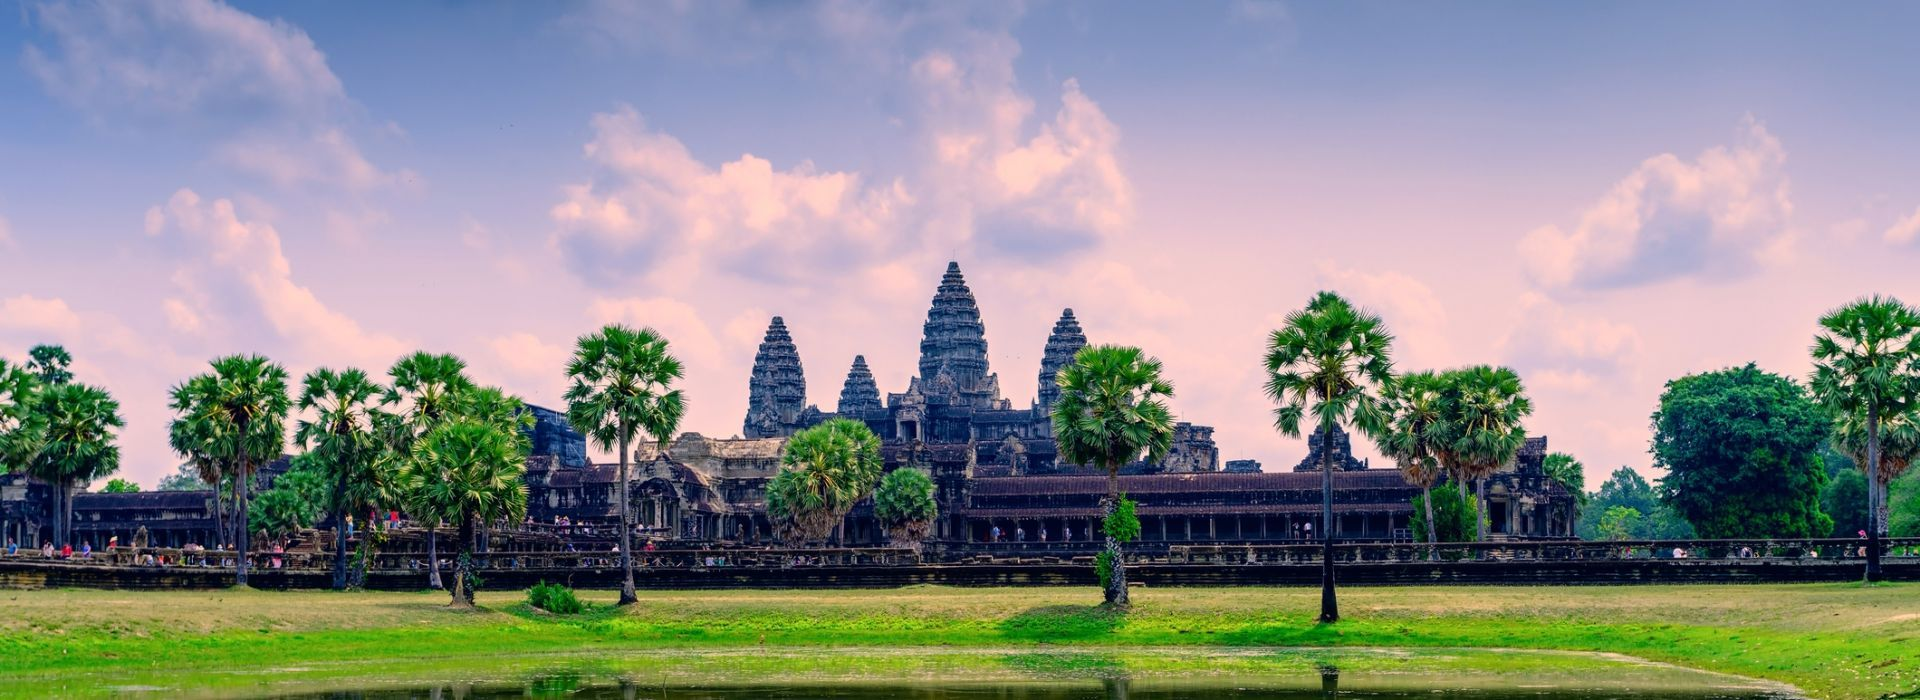 Cultural, religious and historic sites Tours in Siem Reap